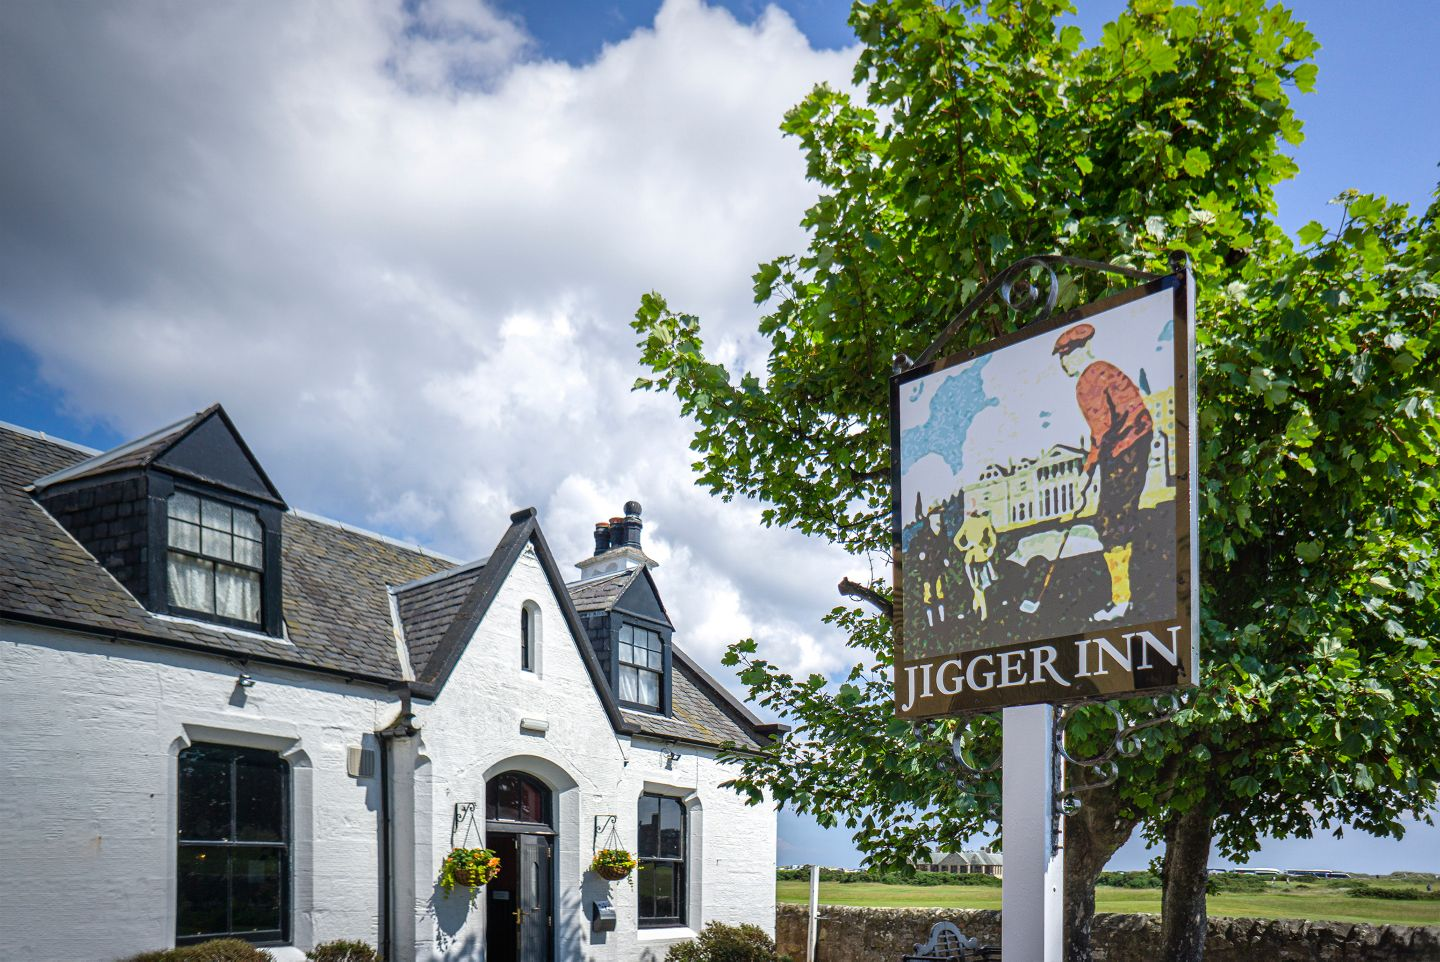 The Jigger Inn exterior and sign